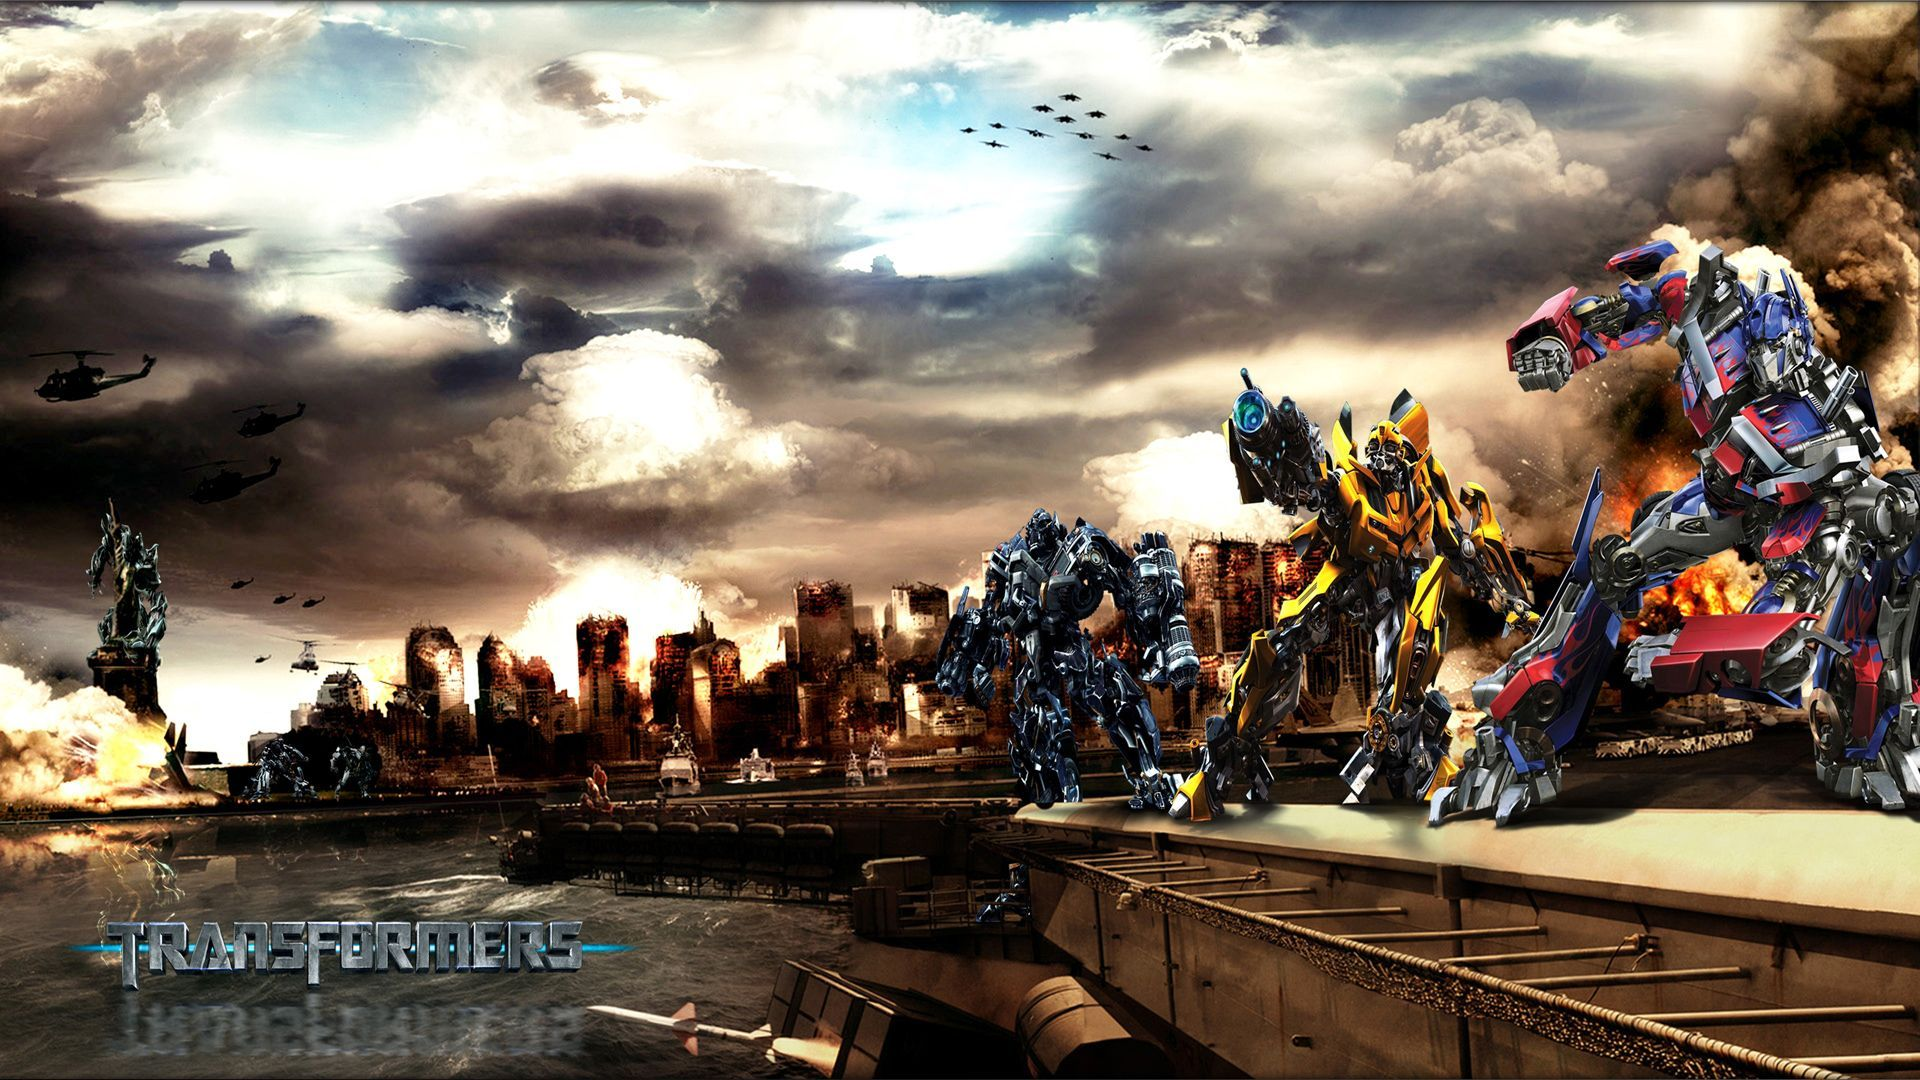 hd movie wallpapers |  movie pictures hd wallpaper transformers 4